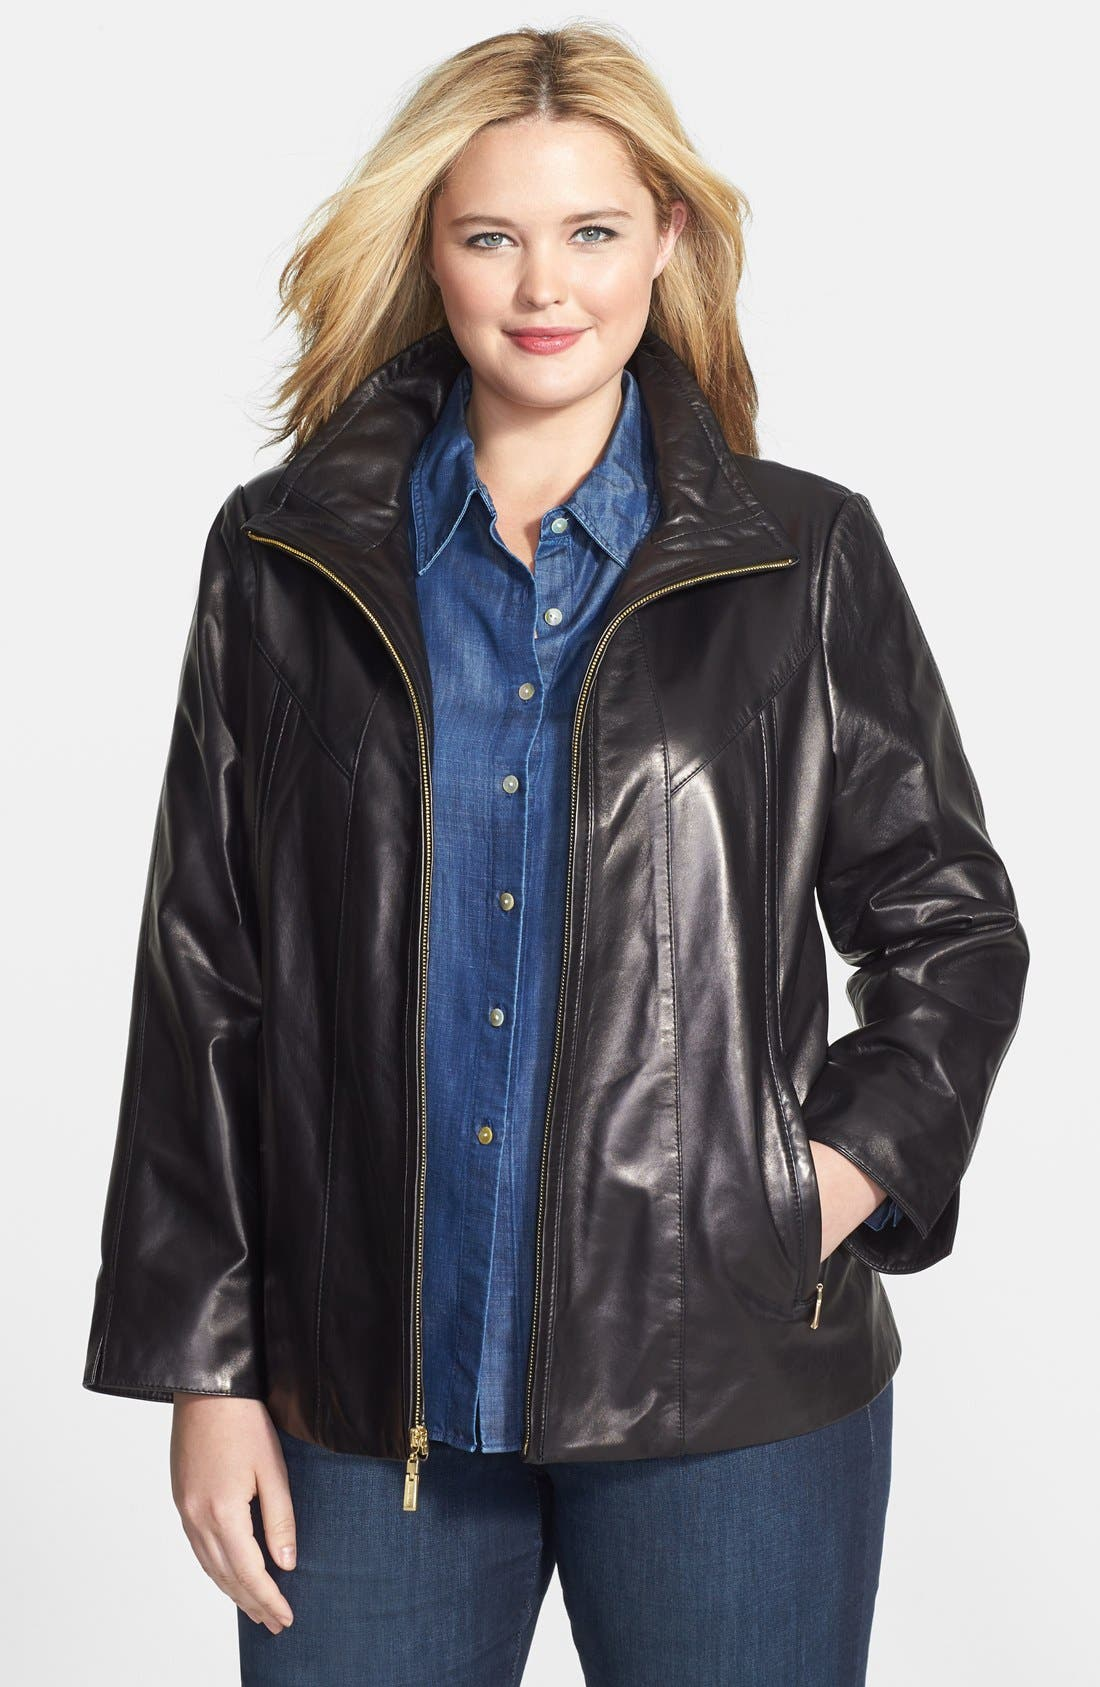 Alternate Image 1 Selected - Ellen Tracy Front Zip Lambskin Leather A-Line Jacket (Plus Size)